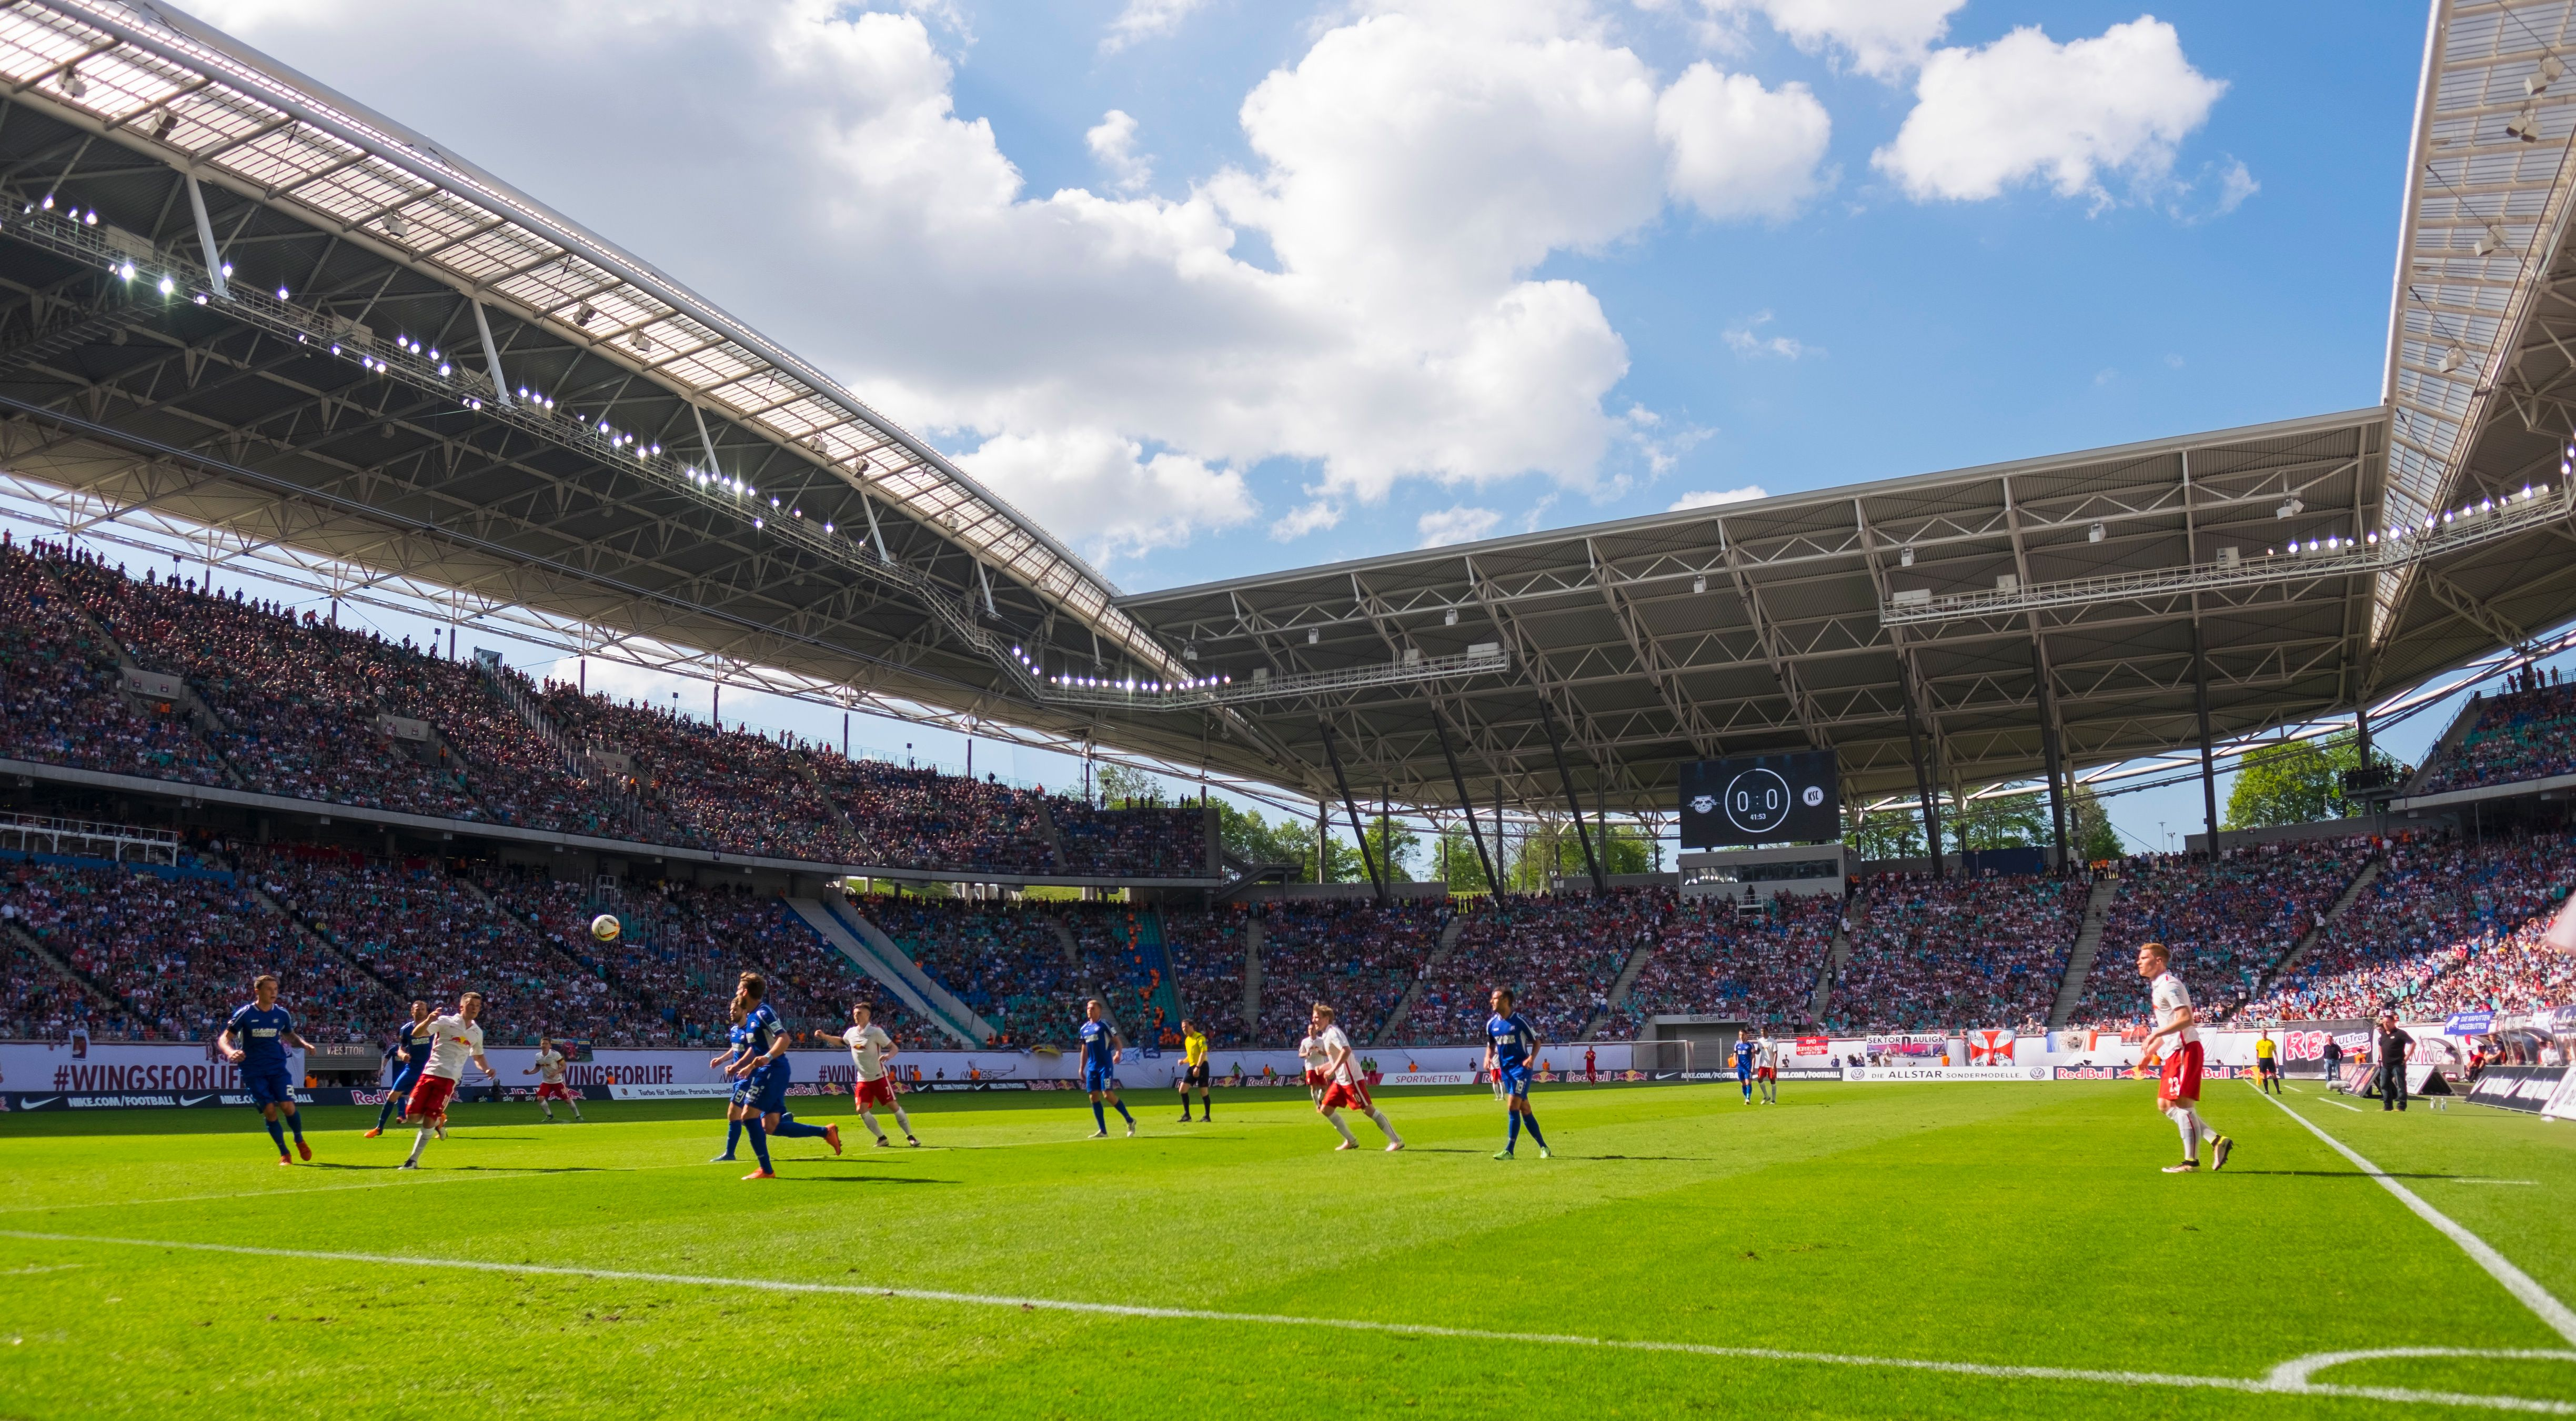 A general view of the Red Bull Arena football stadium during the German second division Bundesliga football match between RB Leipzig and Karlsruher SC in Leipzig, eastern Germany, on May 8, 2016. Leipzig won the match 2-0 and will be promoted to the first division Bundesliga next season. / AFP / Robert MICHAEL (Photo credit should read ROBERT MICHAEL/AFP/Getty Images)